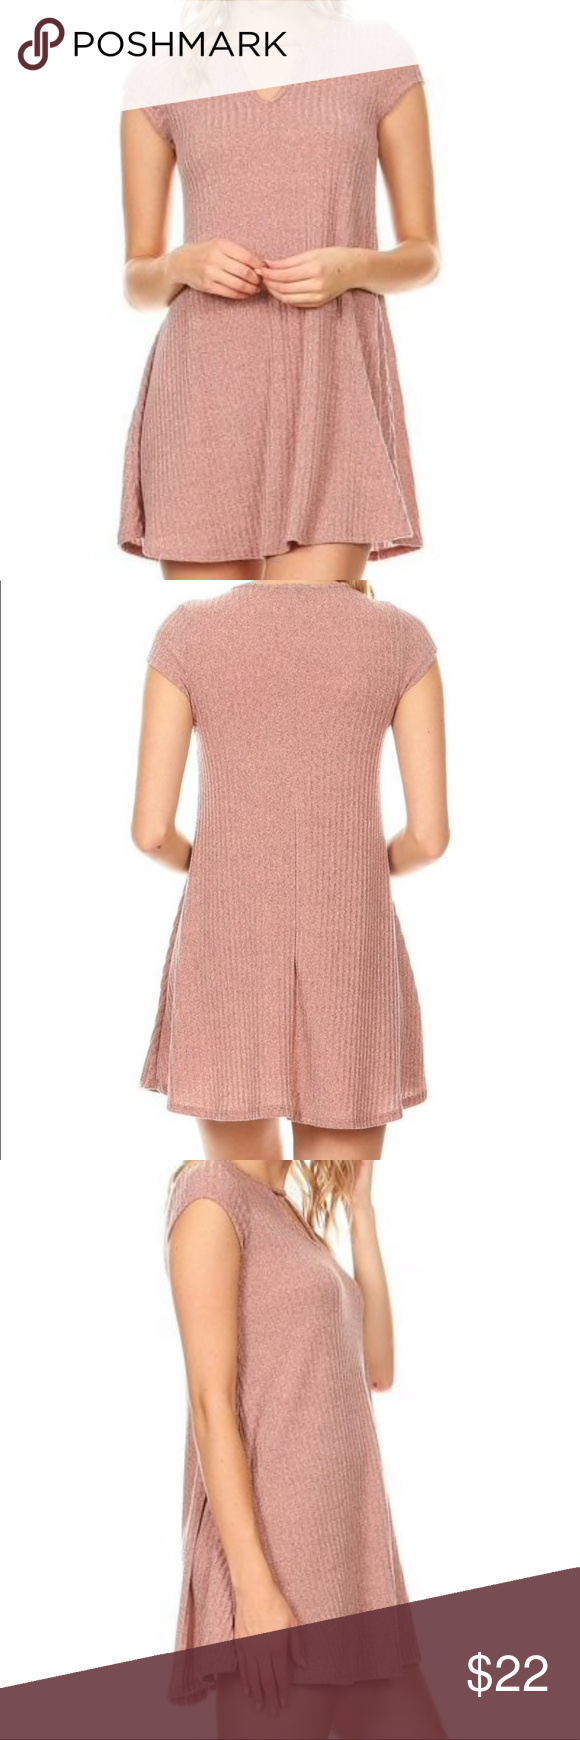 """571c22583225 Sweetkie Swing Dress Vibe Sweetkie Ribbed Keyhole Swing Mini Dress.  Polyester/Rayon/Spandex Blend. Approximately 30"""" Long. Brand New, With Tag. Vibe  Dresses ..."""